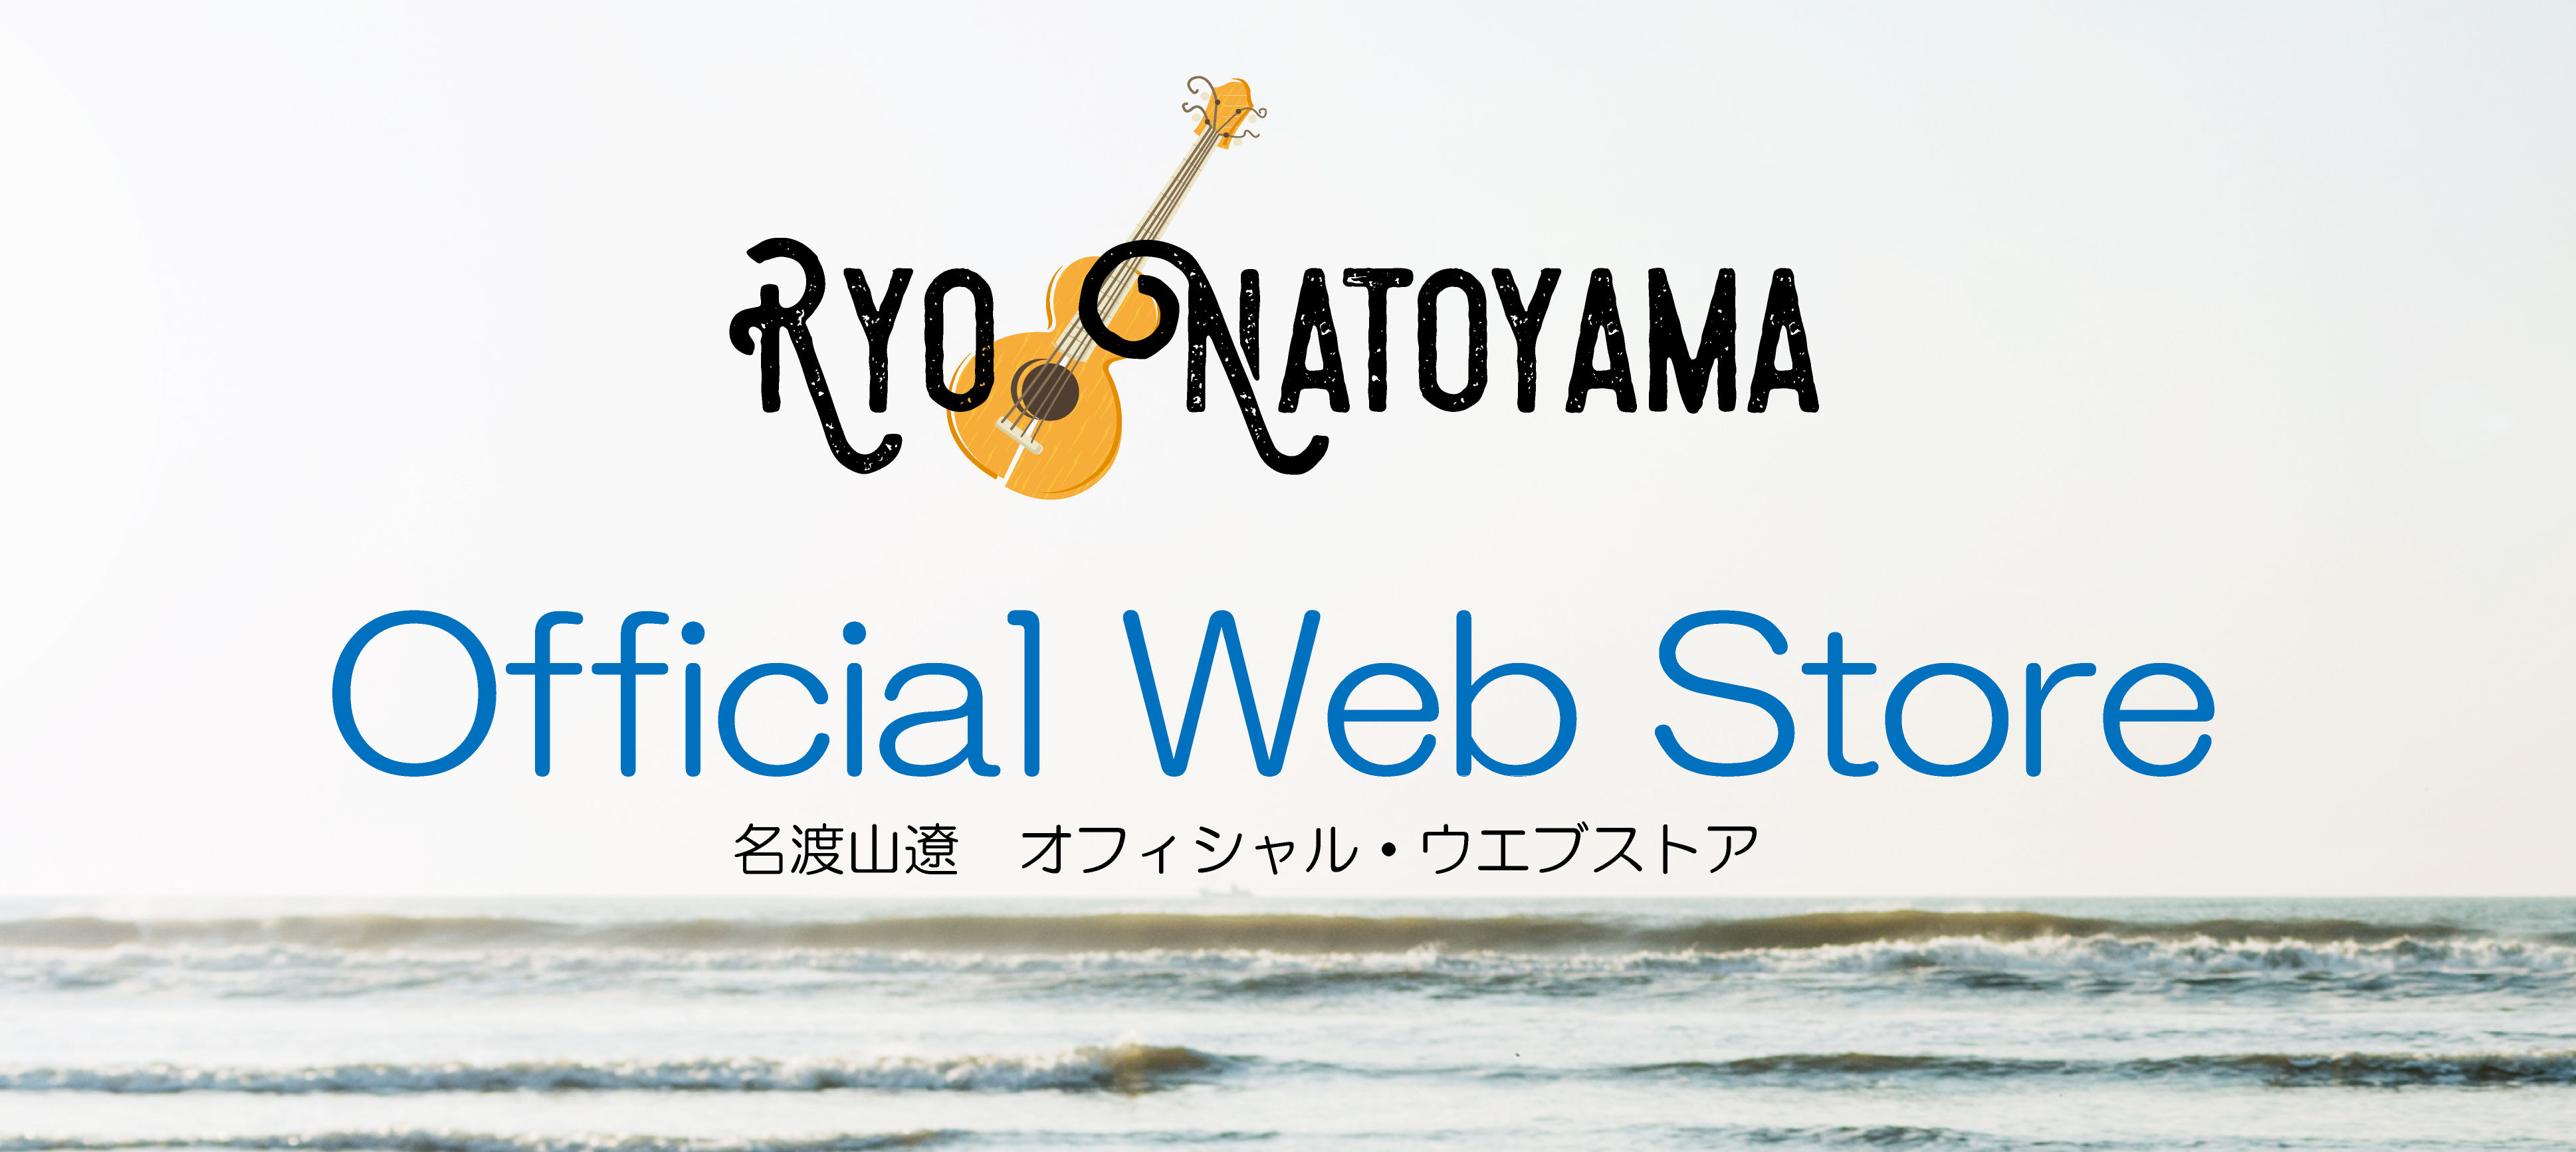 ryonatoyama-official